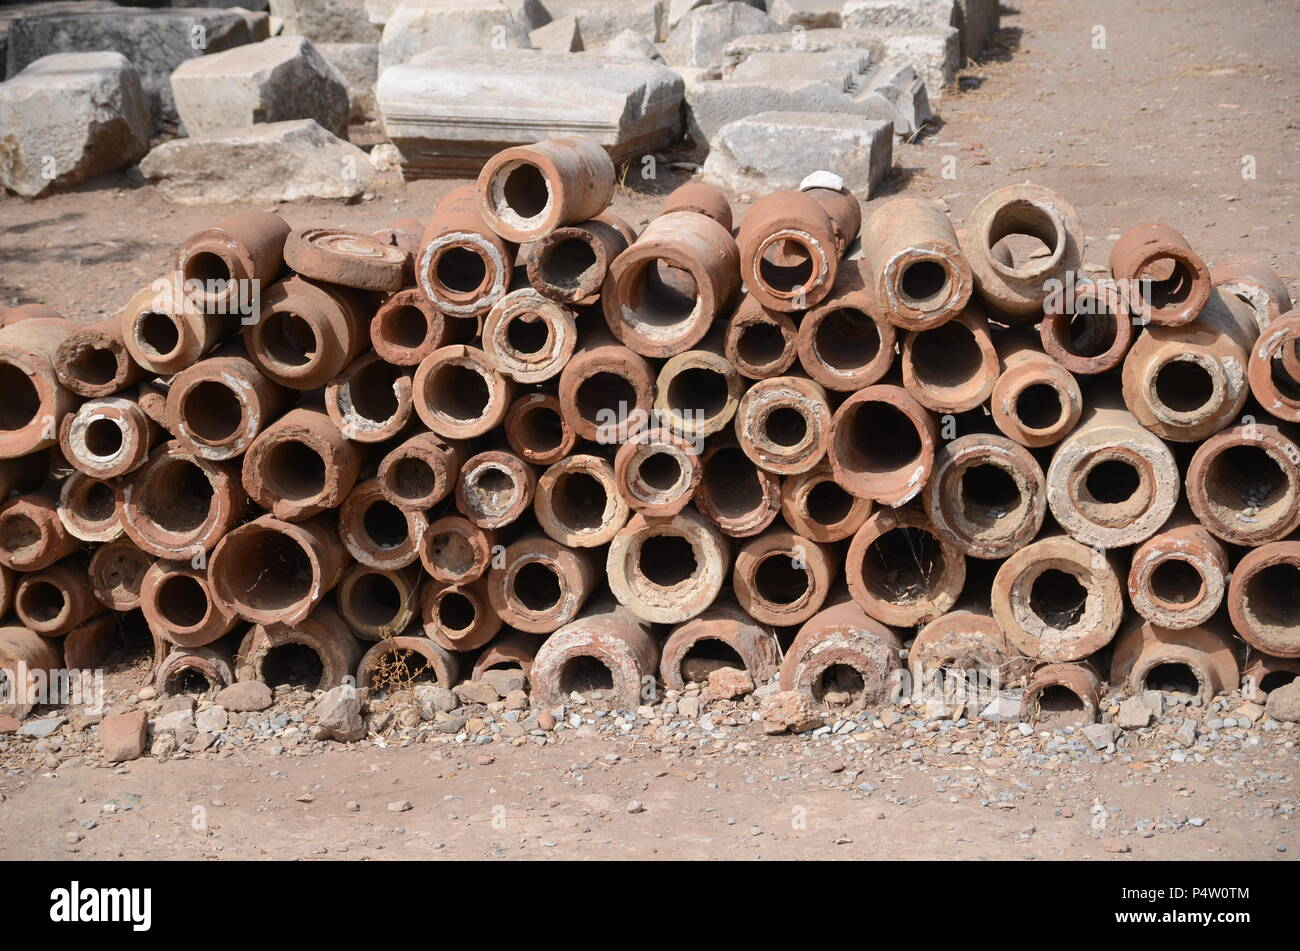 Old Pipes Stock Photos Amp Old Pipes Stock Images Alamy